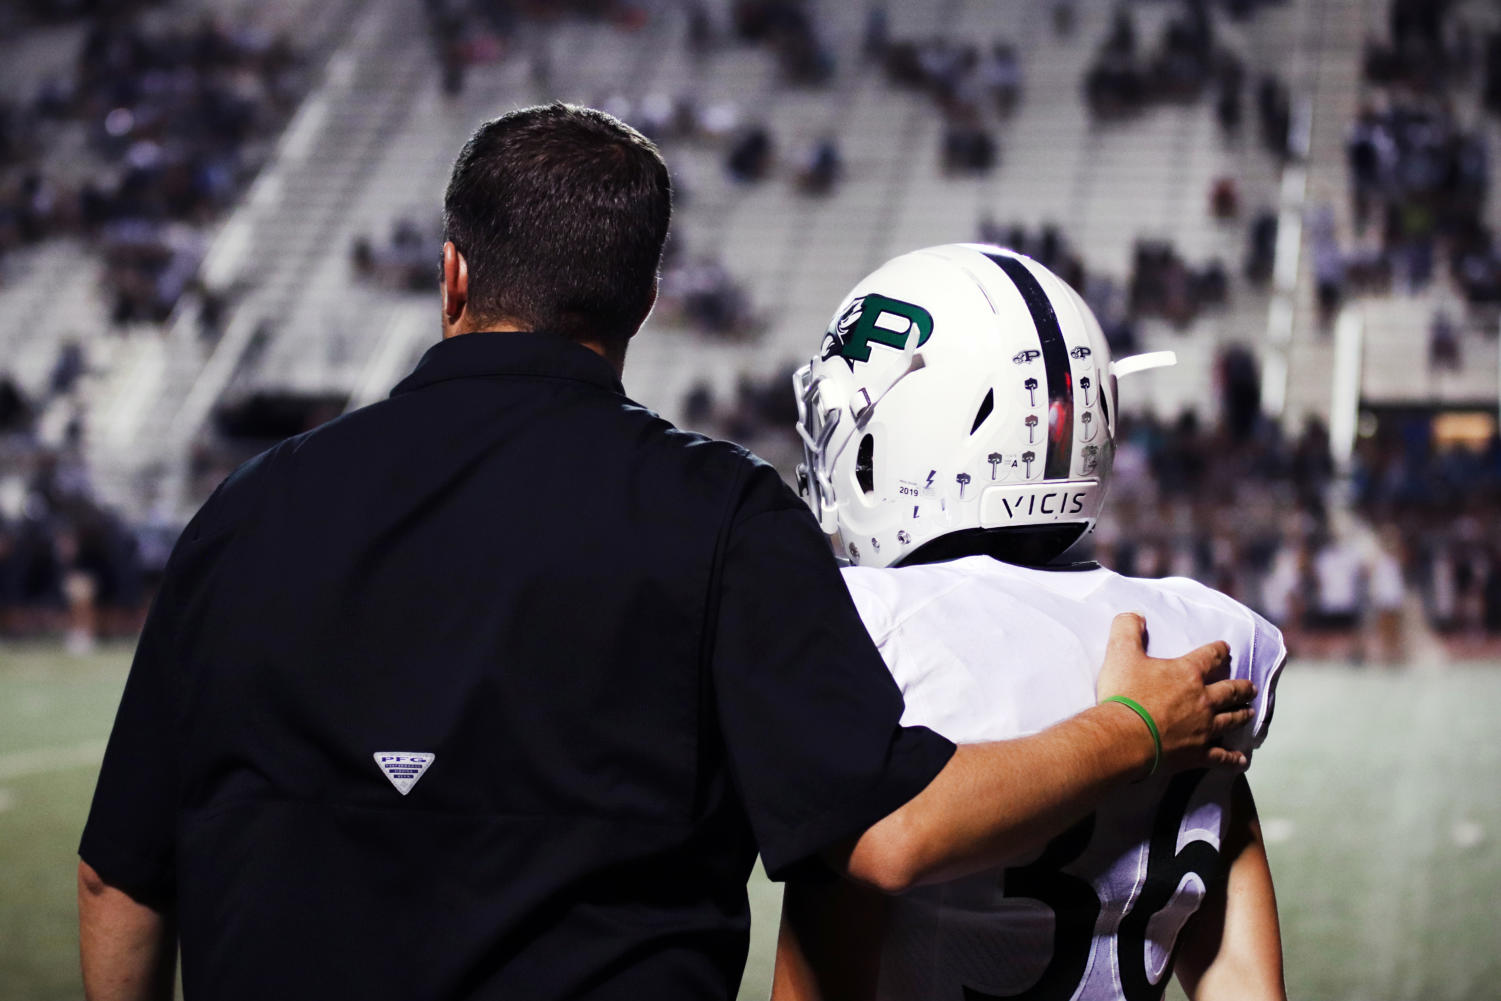 Coach Coby Richards and player Brad Larson  prepare for the junior kicker to enter the game Friday, Sept. 13. Prosper beat Flower Mound at their homecoming this evening after taking the lead of 57-34. Now, the Eagles have a record of 4-0 with a win over McKinney High on Friday.